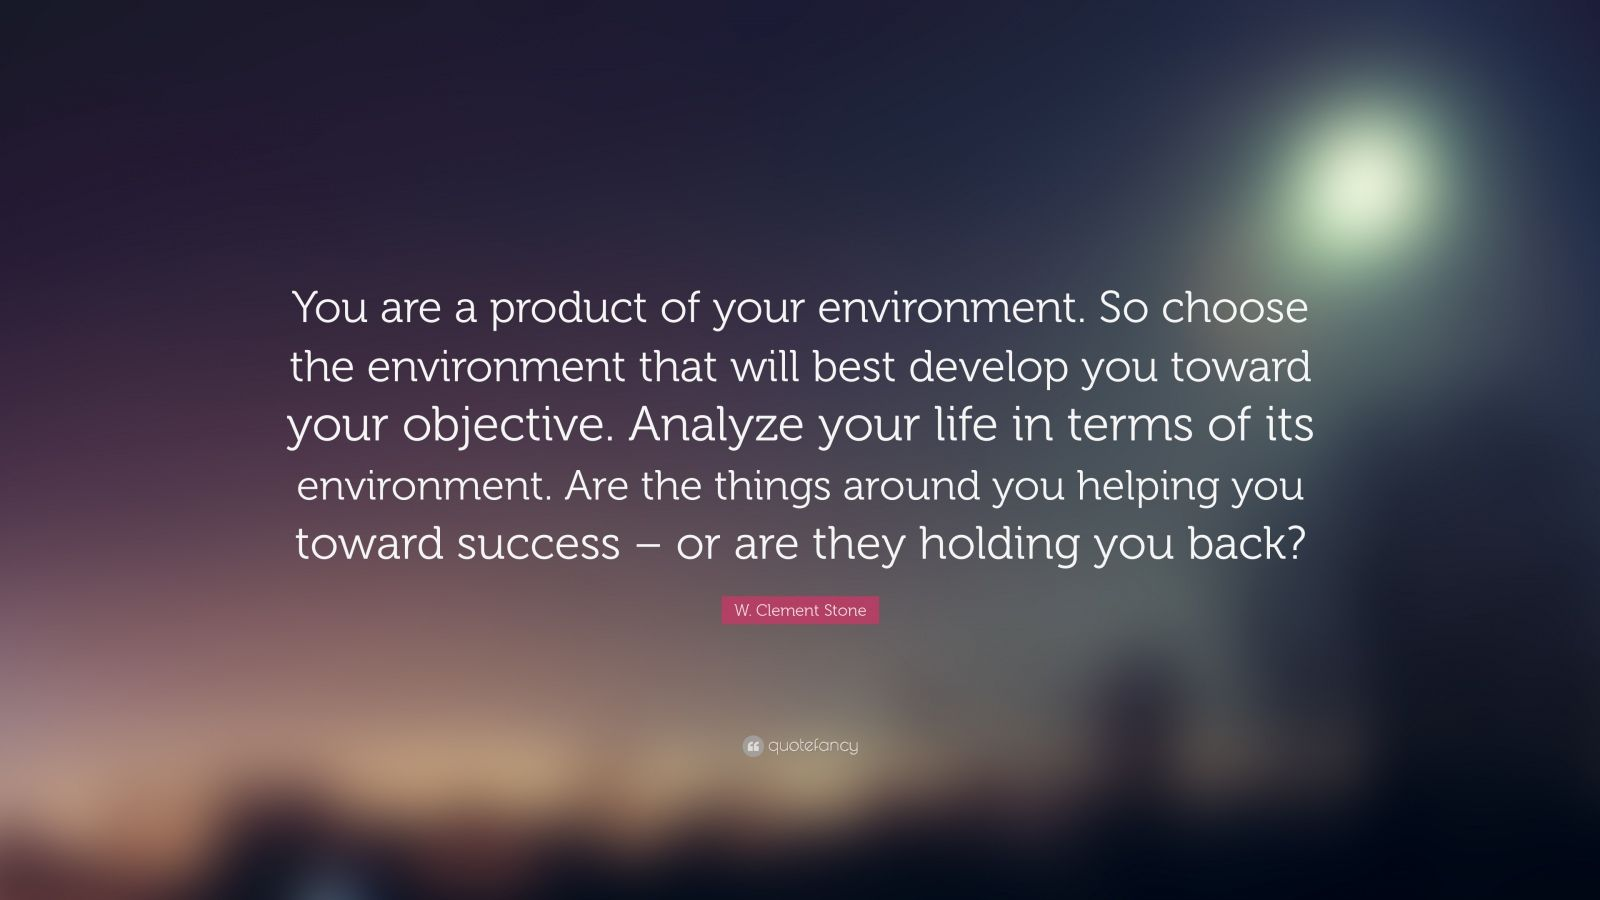 "W. Clement Stone Quote: ""You are a product of your environment. So choose the environment that will best develop you toward your objective. Analyze your life in terms of its environment. Are the things around you helping you toward success – or are they holding you back?"""